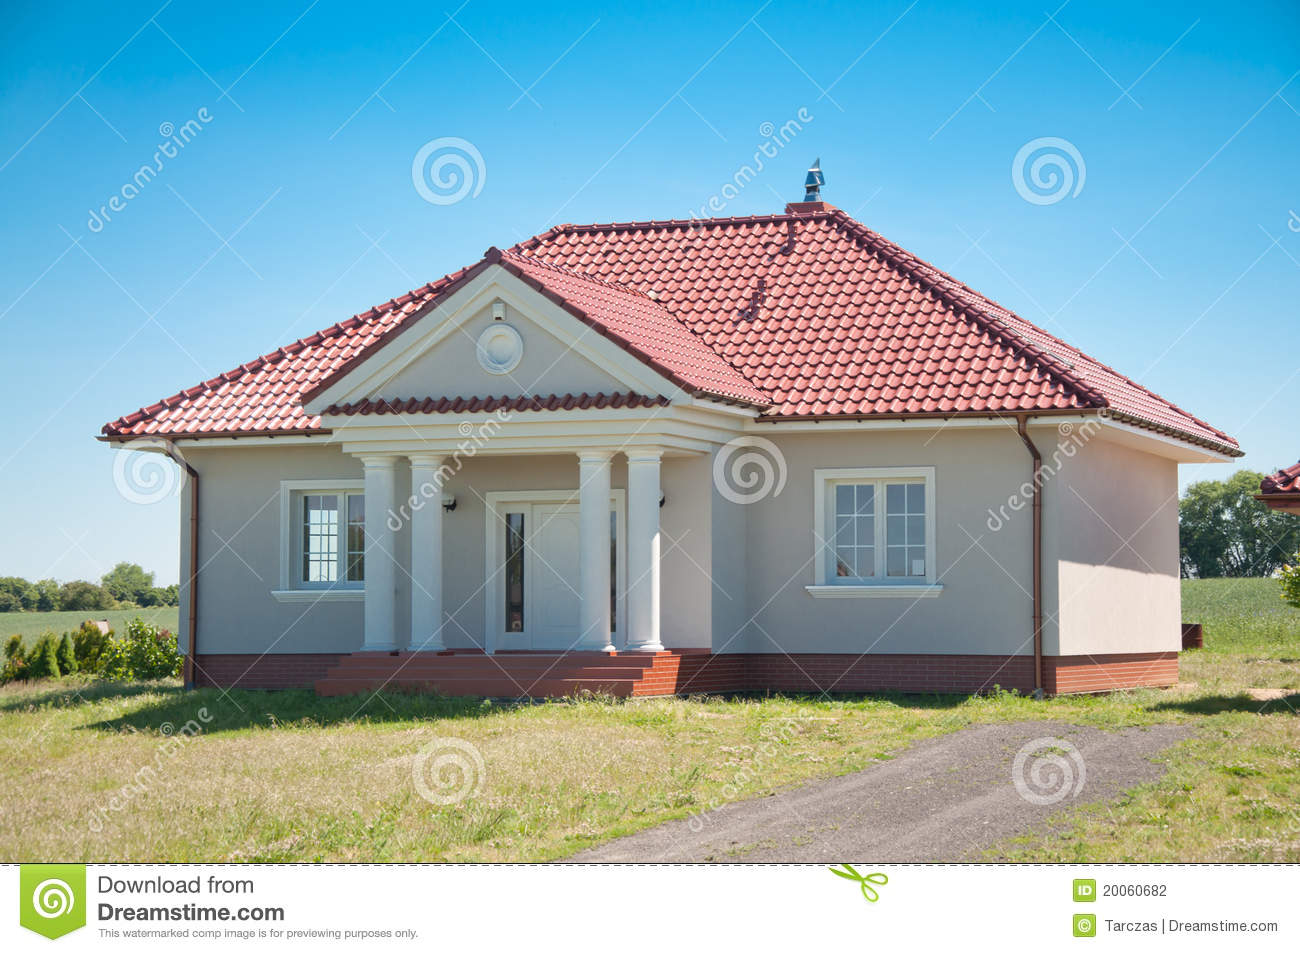 Small One Family House Stock Photography Image 20060682